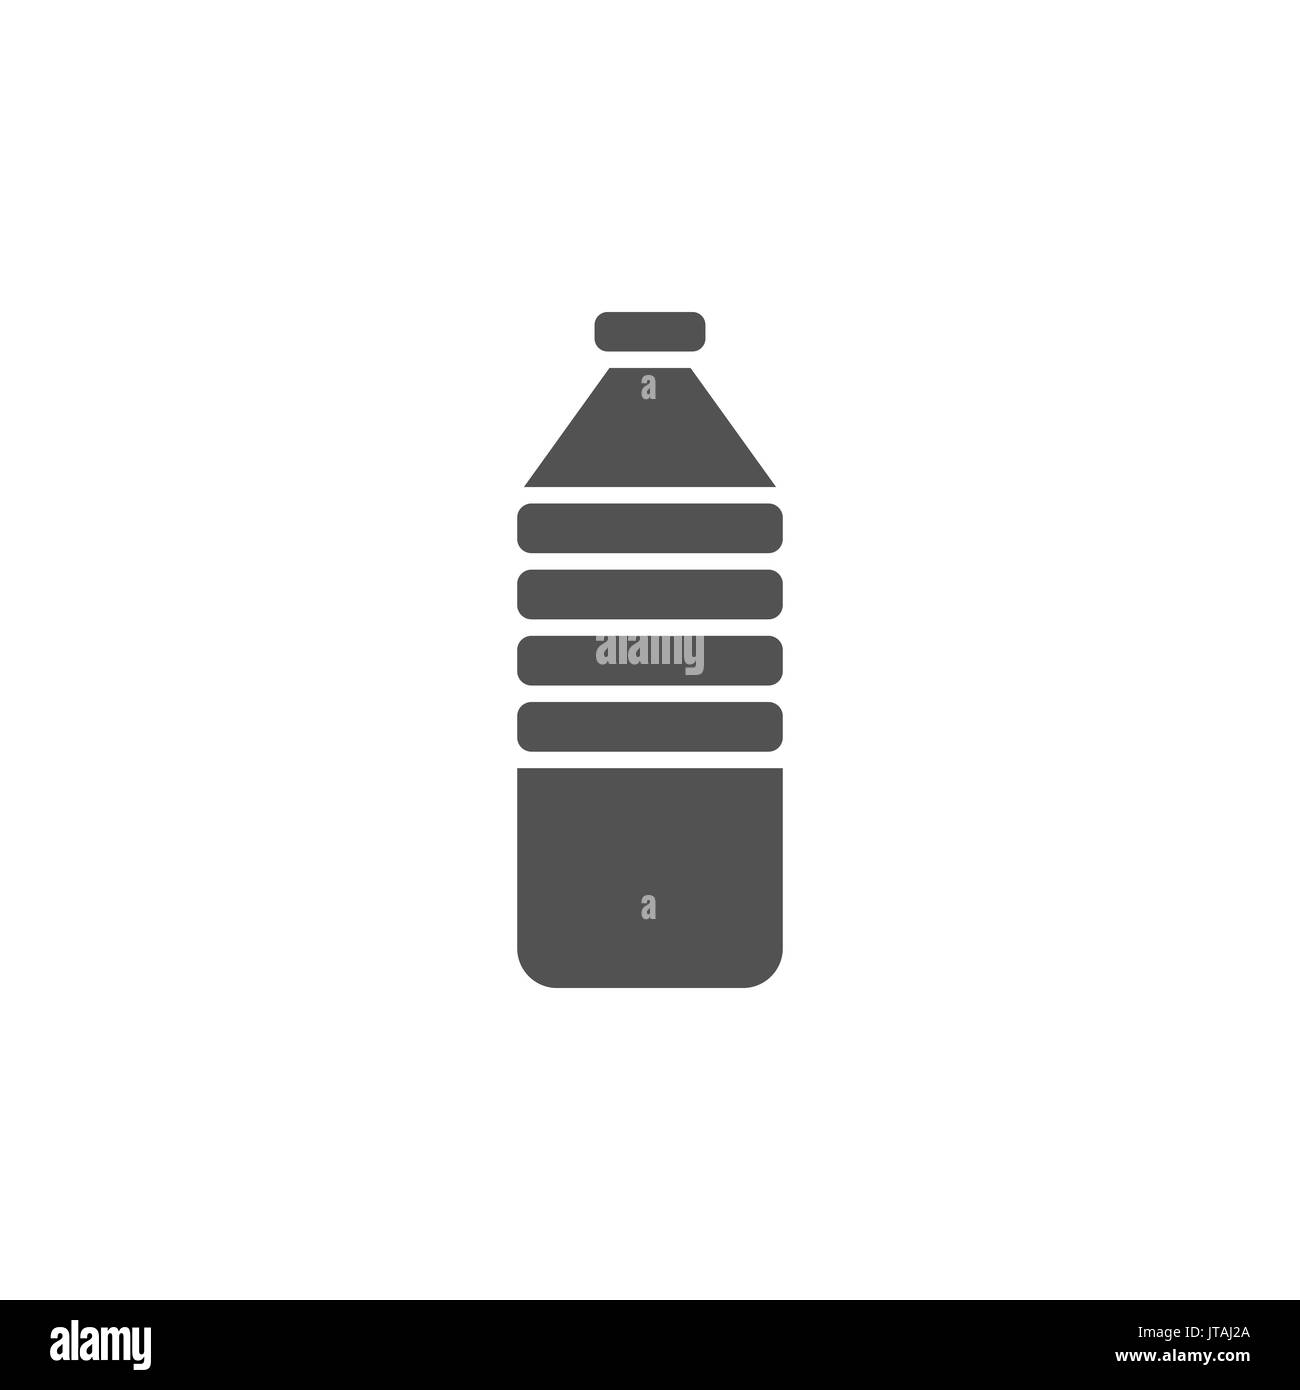 Water bottle icon on white background - Stock Vector